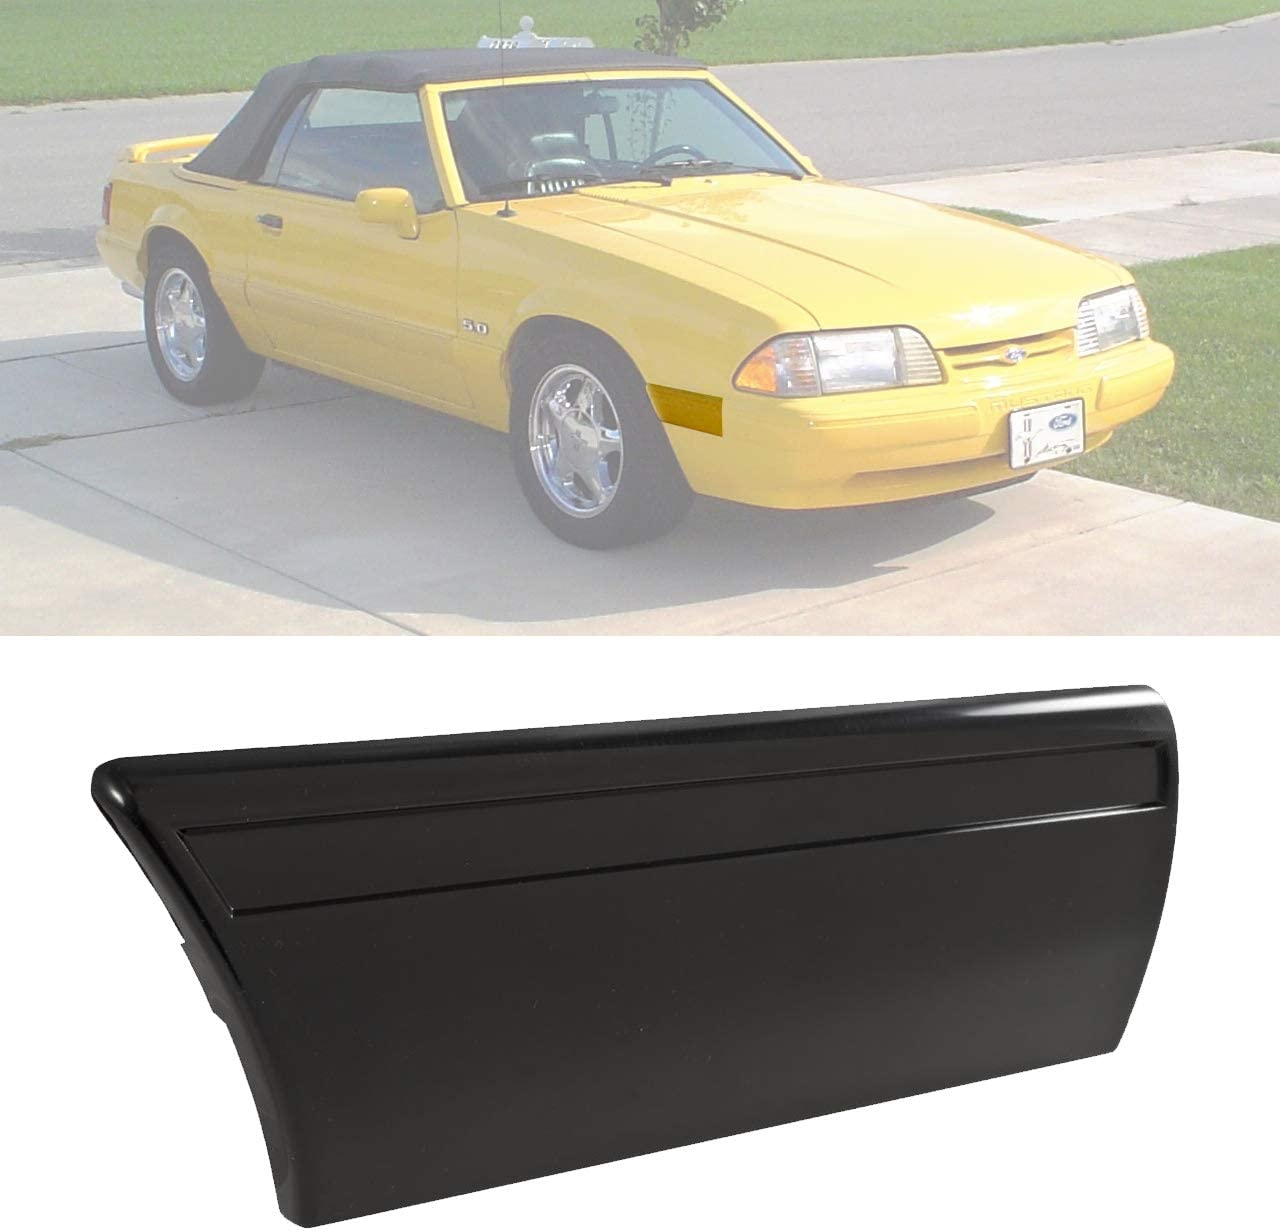 Blue Oval Industries 1991-1993 定番キャンバス Mustang Body 定番スタイル Panel to Fender Mold